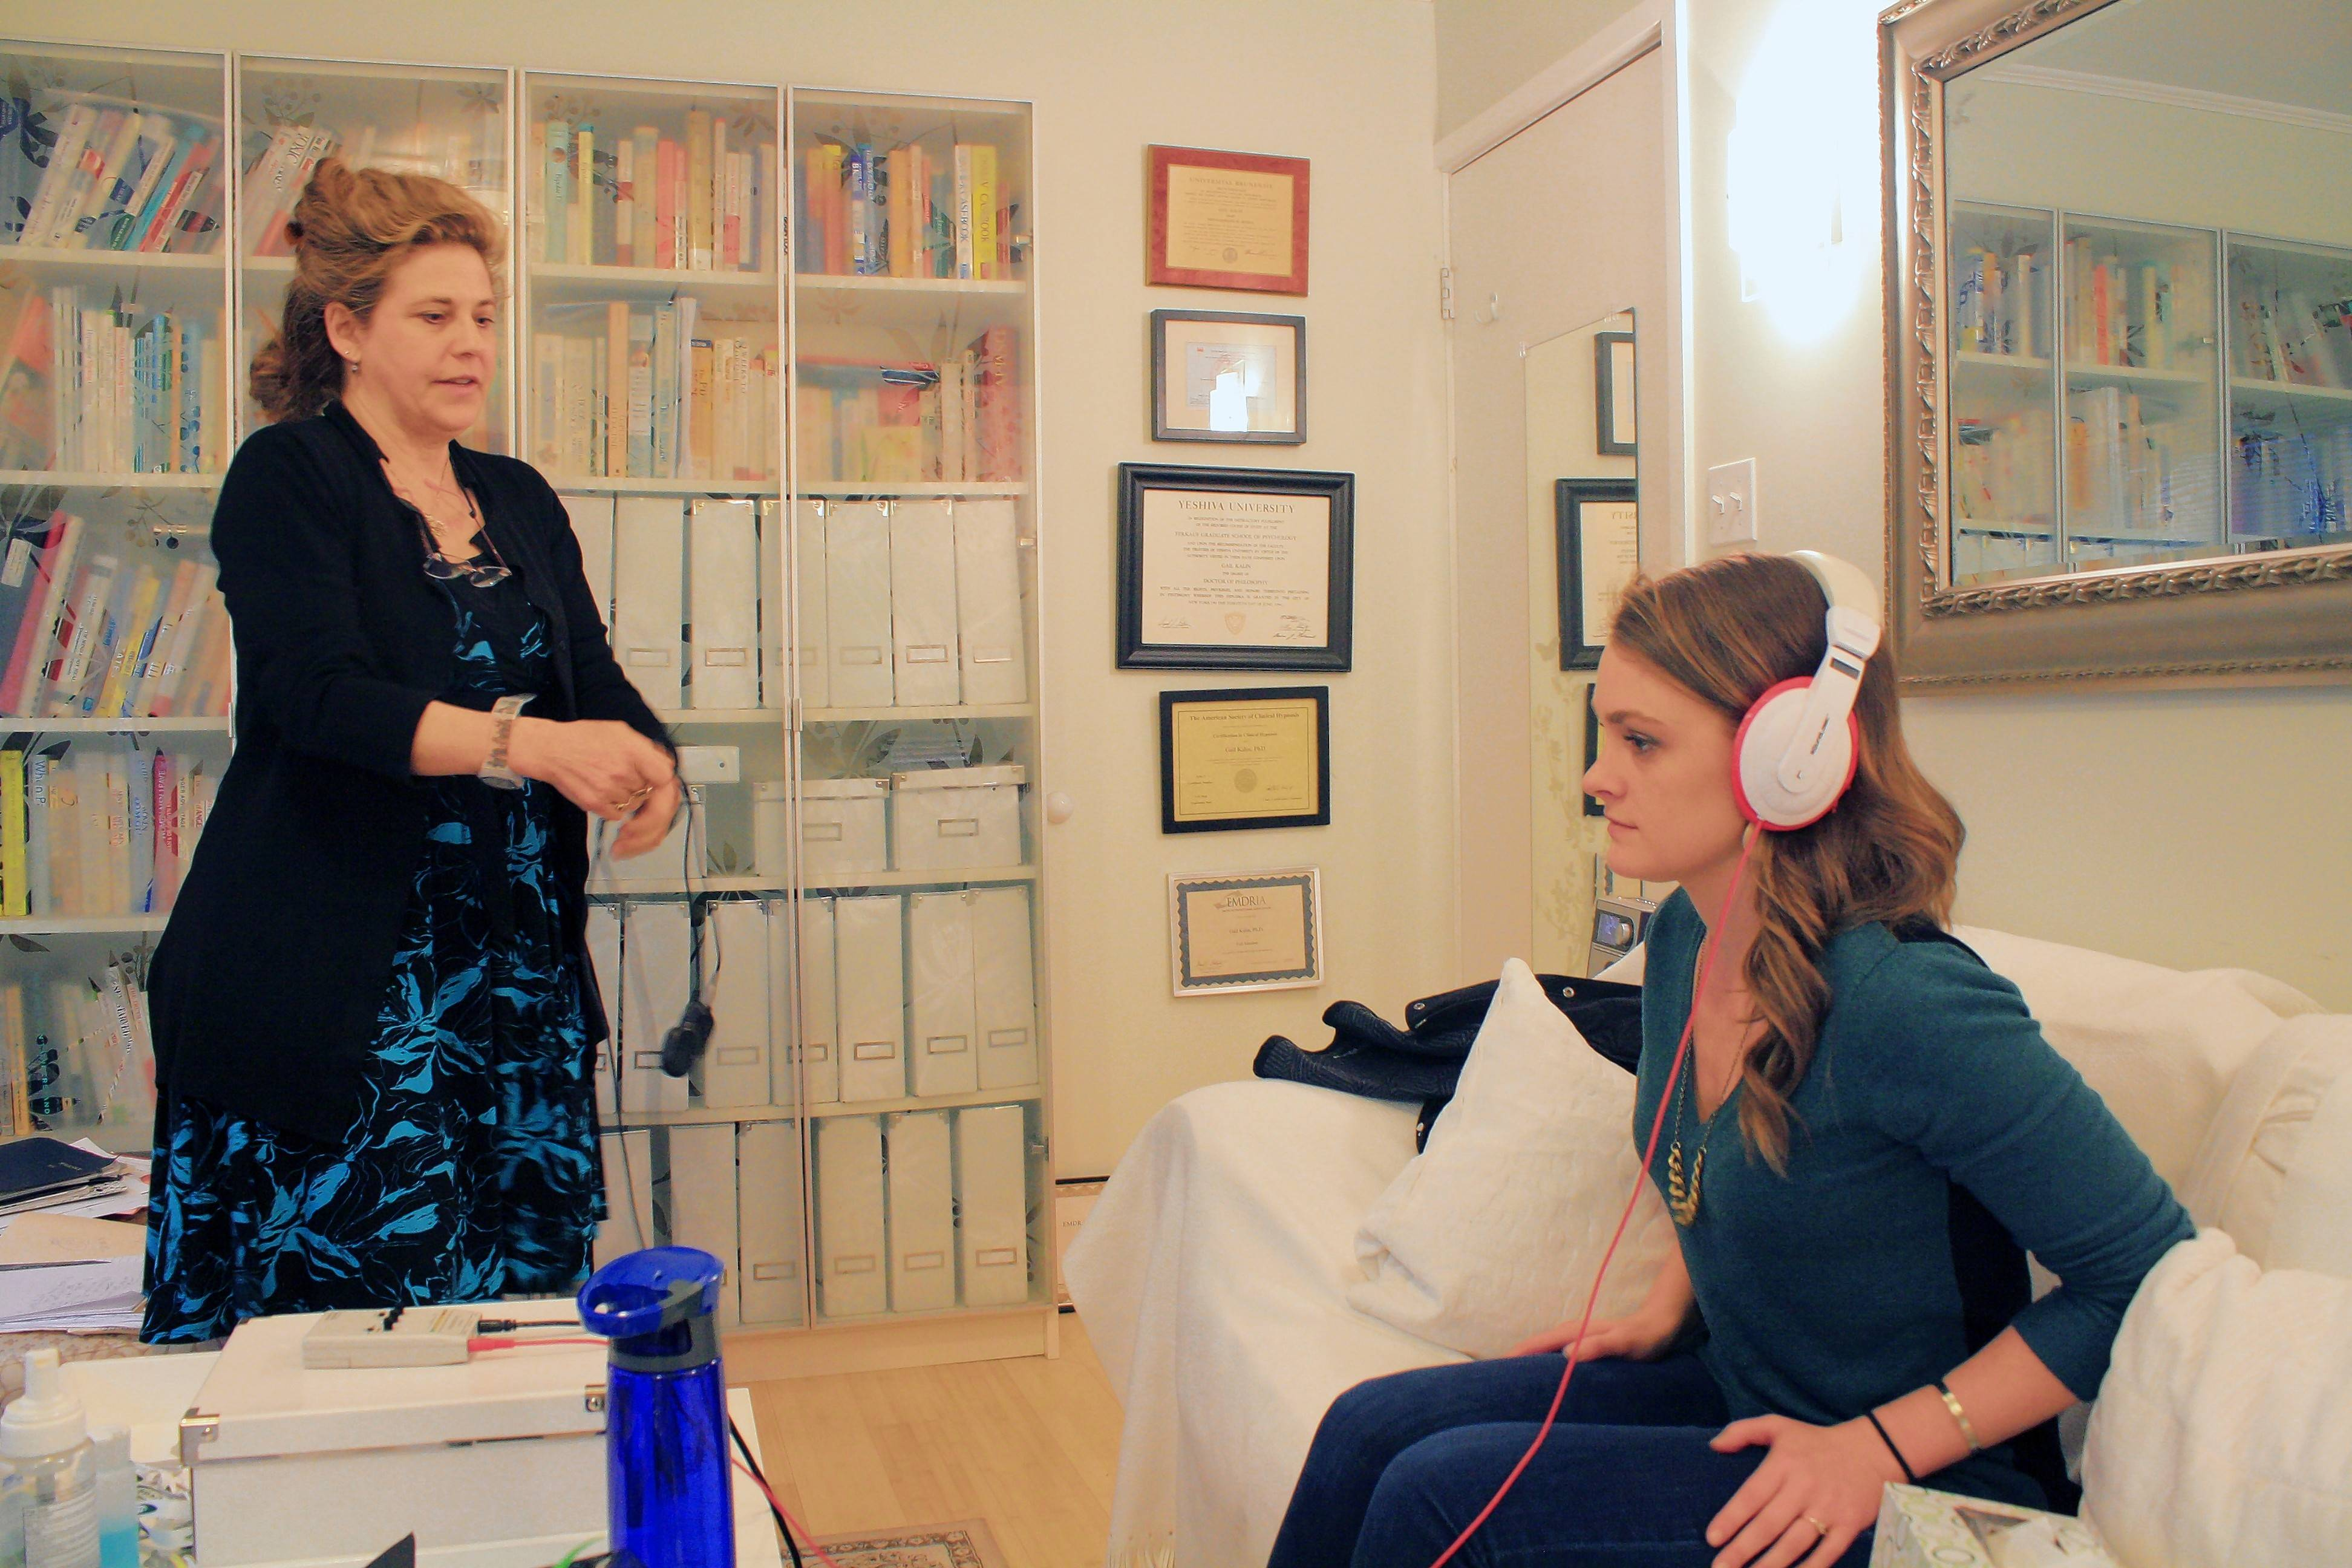 A session Brynne Henn had with EMDR therapist Gail Kalin in Kalin's office.